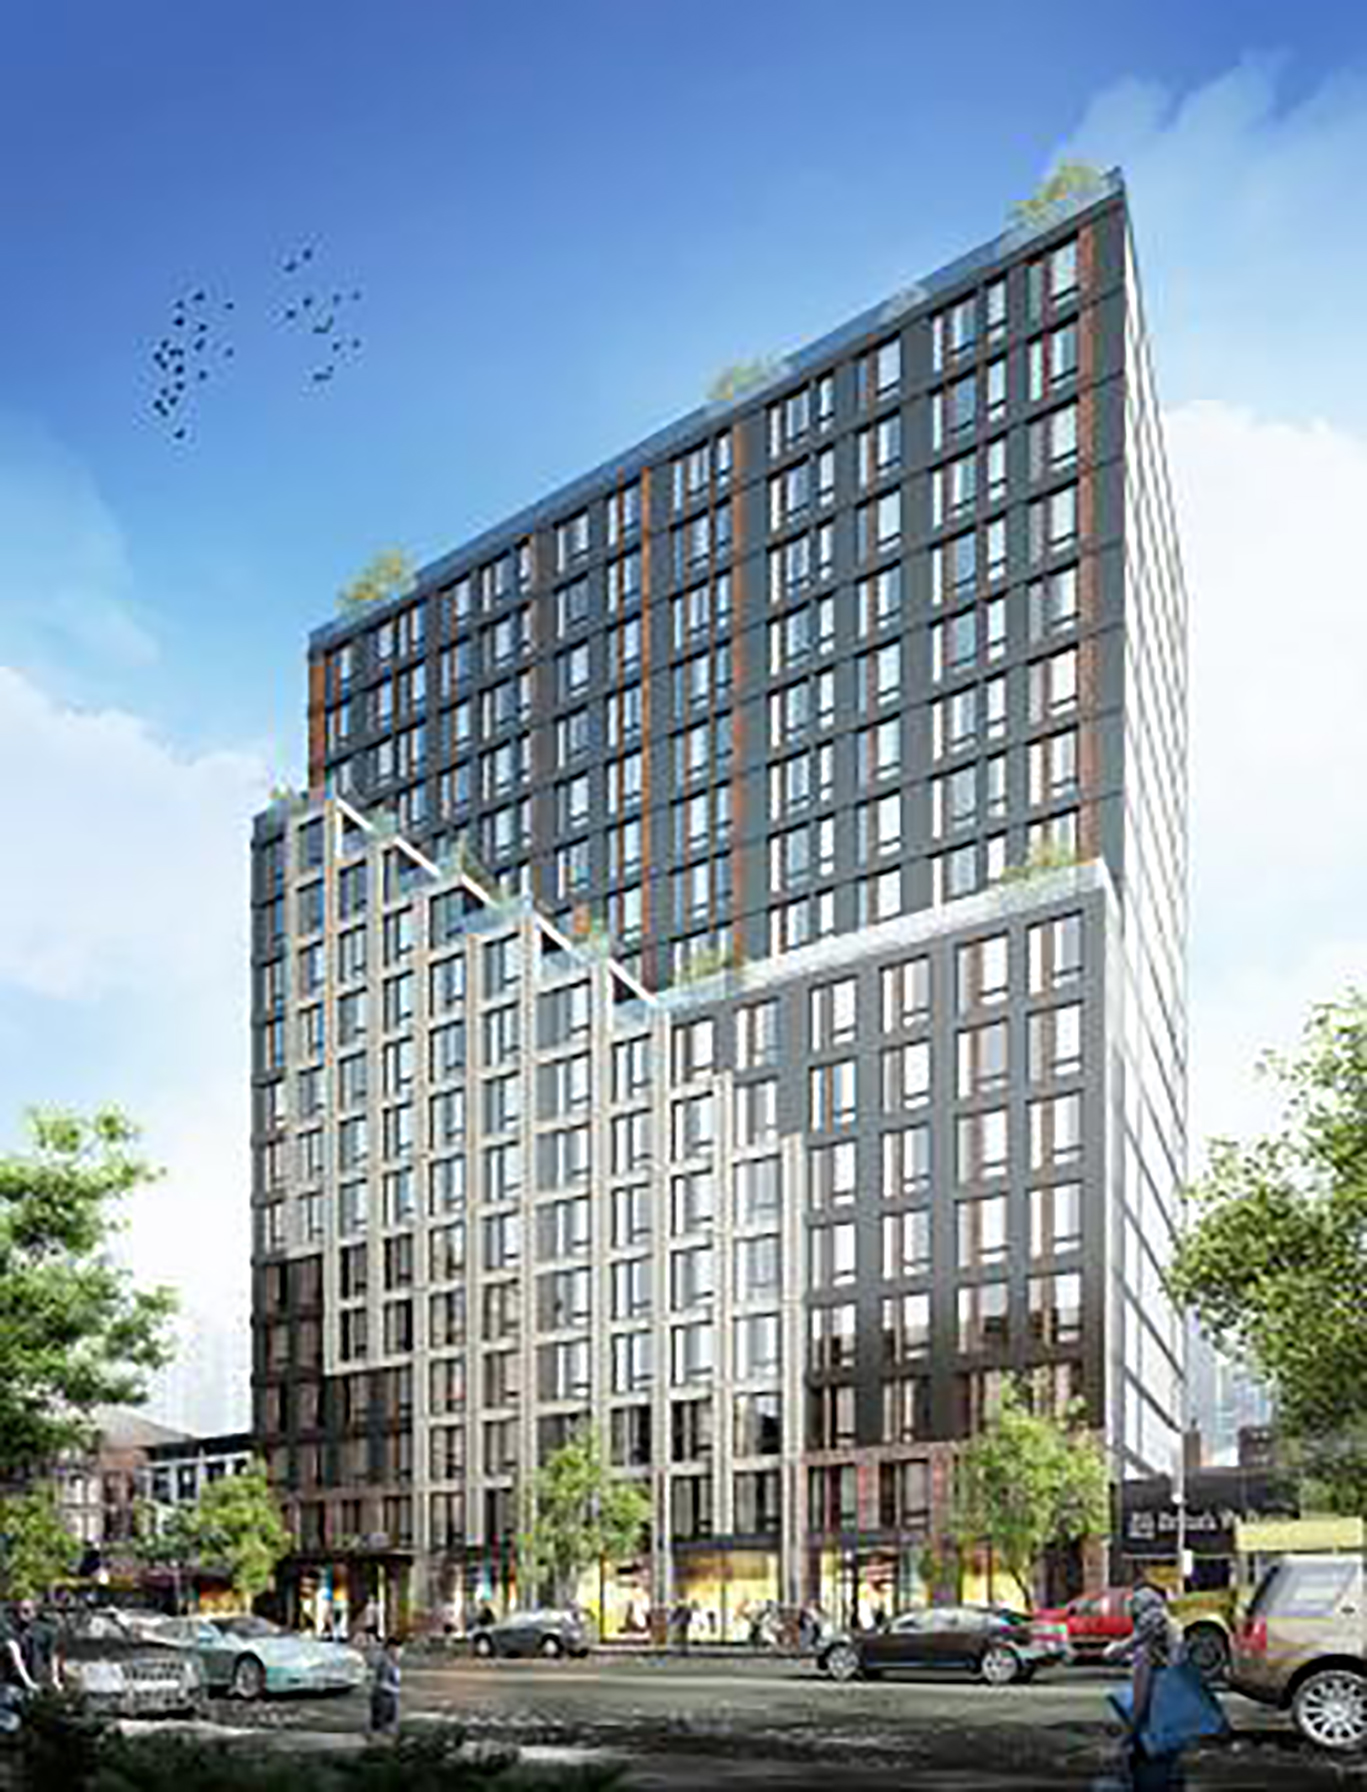 54-62 West 125th Street Rendering